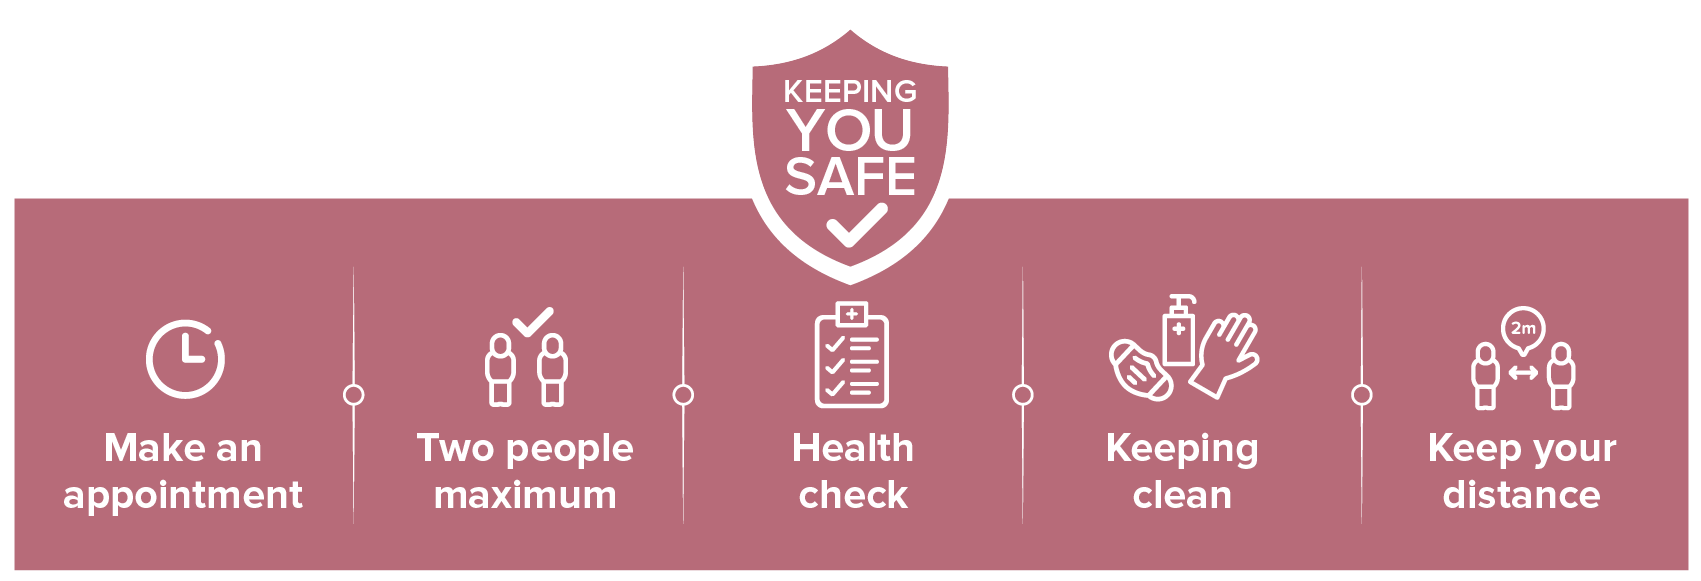 Read about the changes we've made to keep you safe.